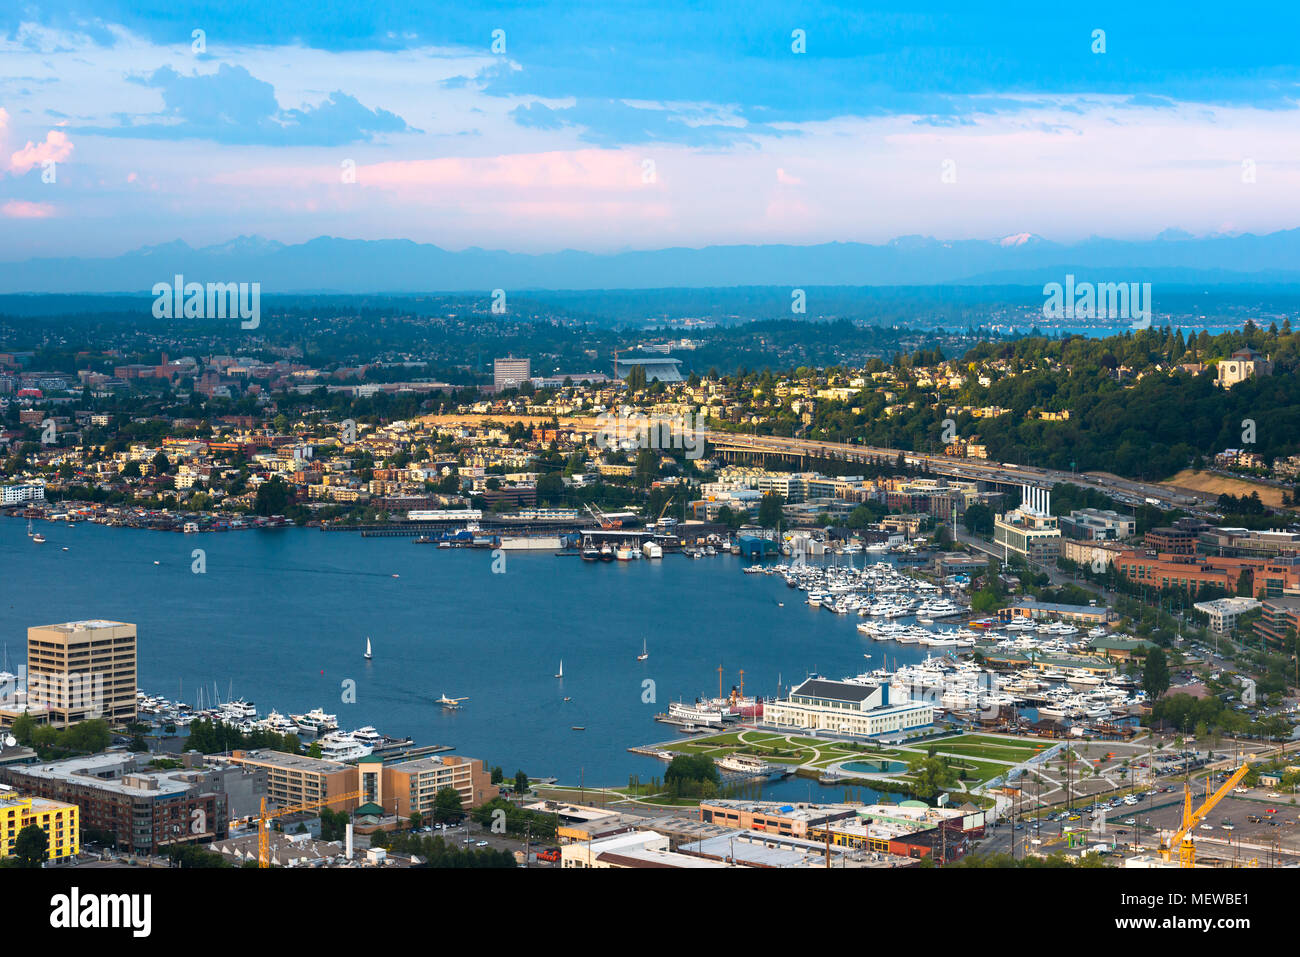 South sore of Lake Union in Seattle, Washington State, USA - Stock Image